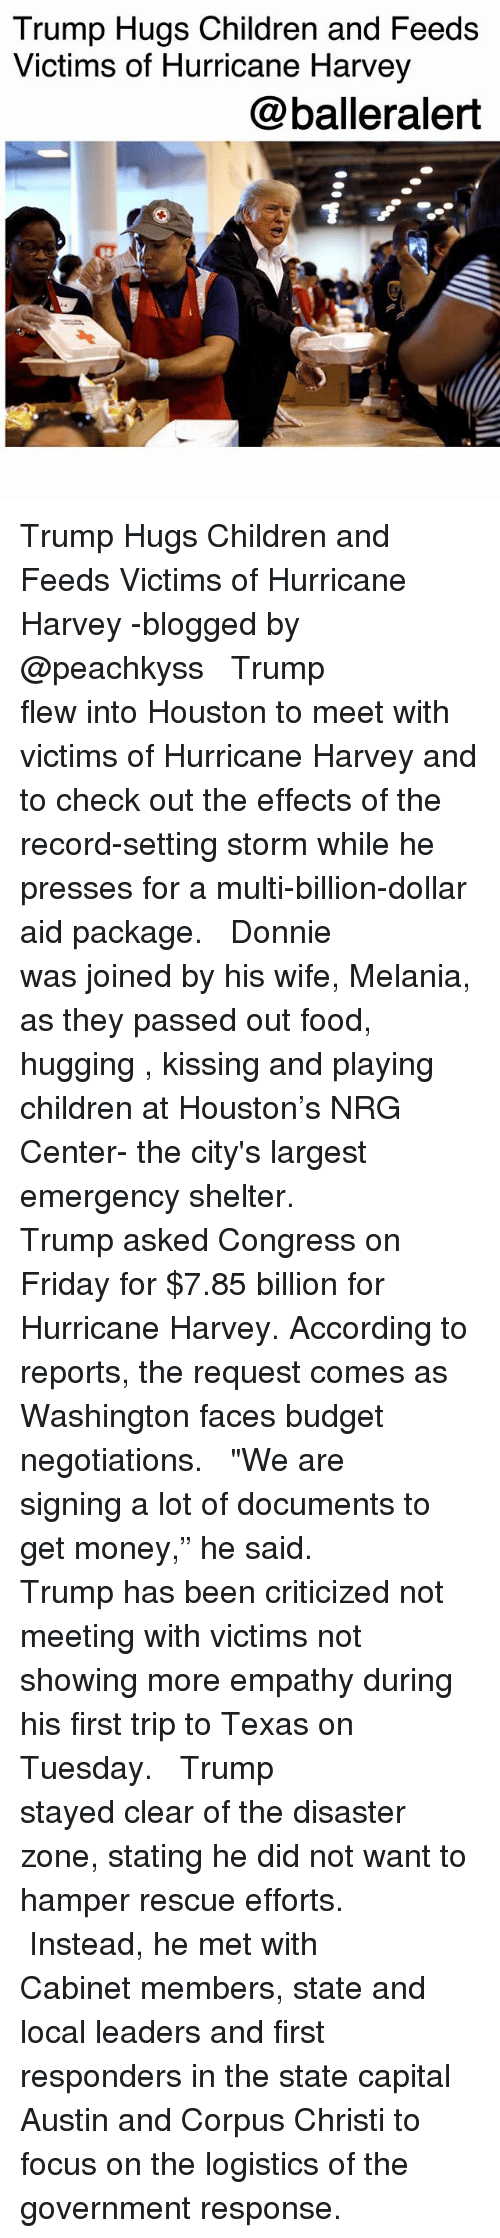 """Children, Food, and Friday: Trump Hugs Children and Feeds  Victims of Hurricane Harvey  @balleralert Trump Hugs Children and Feeds Victims of Hurricane Harvey -blogged by @peachkyss ⠀⠀⠀⠀⠀⠀⠀ ⠀⠀⠀⠀⠀⠀⠀ Trump flew into Houston to meet with victims of Hurricane Harvey and to check out the effects of the record-setting storm while he presses for a multi-billion-dollar aid package. ⠀⠀⠀⠀⠀⠀⠀ ⠀⠀⠀⠀⠀⠀⠀ Donnie was joined by his wife, Melania, as they passed out food, hugging , kissing and playing children at Houston's NRG Center- the city's largest emergency shelter. ⠀⠀⠀⠀⠀⠀⠀ ⠀⠀⠀⠀⠀⠀⠀ Trump asked Congress on Friday for $7.85 billion for Hurricane Harvey. According to reports, the request comes as Washington faces budget negotiations. ⠀⠀⠀⠀⠀⠀⠀ ⠀⠀⠀⠀⠀⠀⠀ """"We are signing a lot of documents to get money,"""" he said. ⠀⠀⠀⠀⠀⠀⠀ ⠀⠀⠀⠀⠀⠀⠀ Trump has been criticized not meeting with victims not showing more empathy during his first trip to Texas on Tuesday. ⠀⠀⠀⠀⠀⠀⠀ ⠀⠀⠀⠀⠀⠀⠀ Trump stayed clear of the disaster zone, stating he did not want to hamper rescue efforts. ⠀⠀⠀⠀⠀⠀⠀ ⠀⠀⠀⠀⠀⠀⠀ Instead, he met with Cabinet members, state and local leaders and first responders in the state capital Austin and Corpus Christi to focus on the logistics of the government response."""